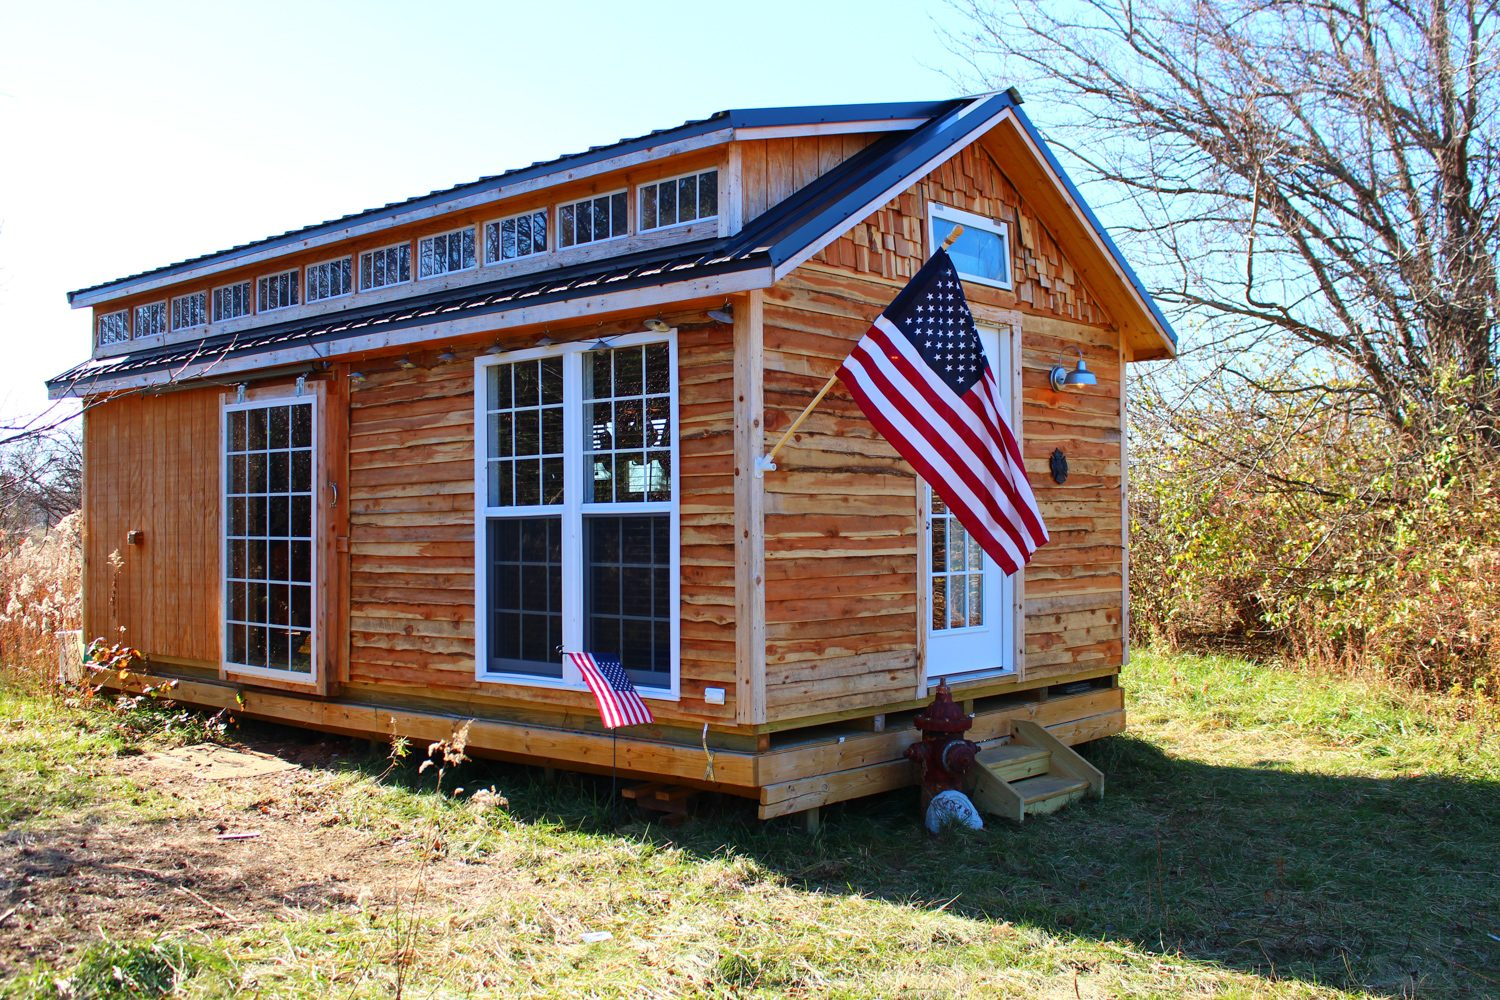 prefab cabin shed shell used as tiny home in dayton ohio